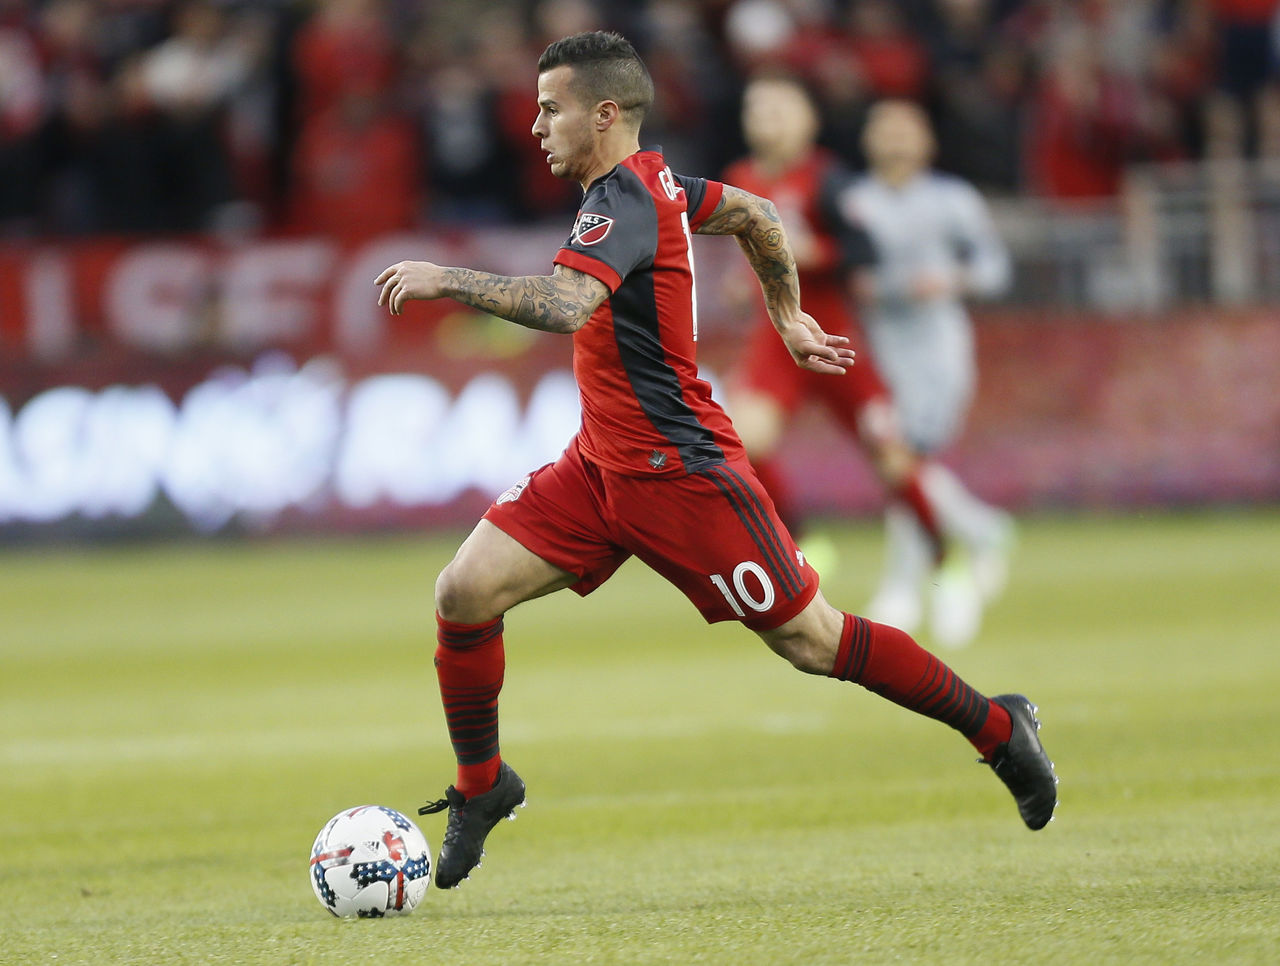 Cropped 2017 04 22t004148z 619381029 nocid rtrmadp 3 mls chicago fire at toronto fc